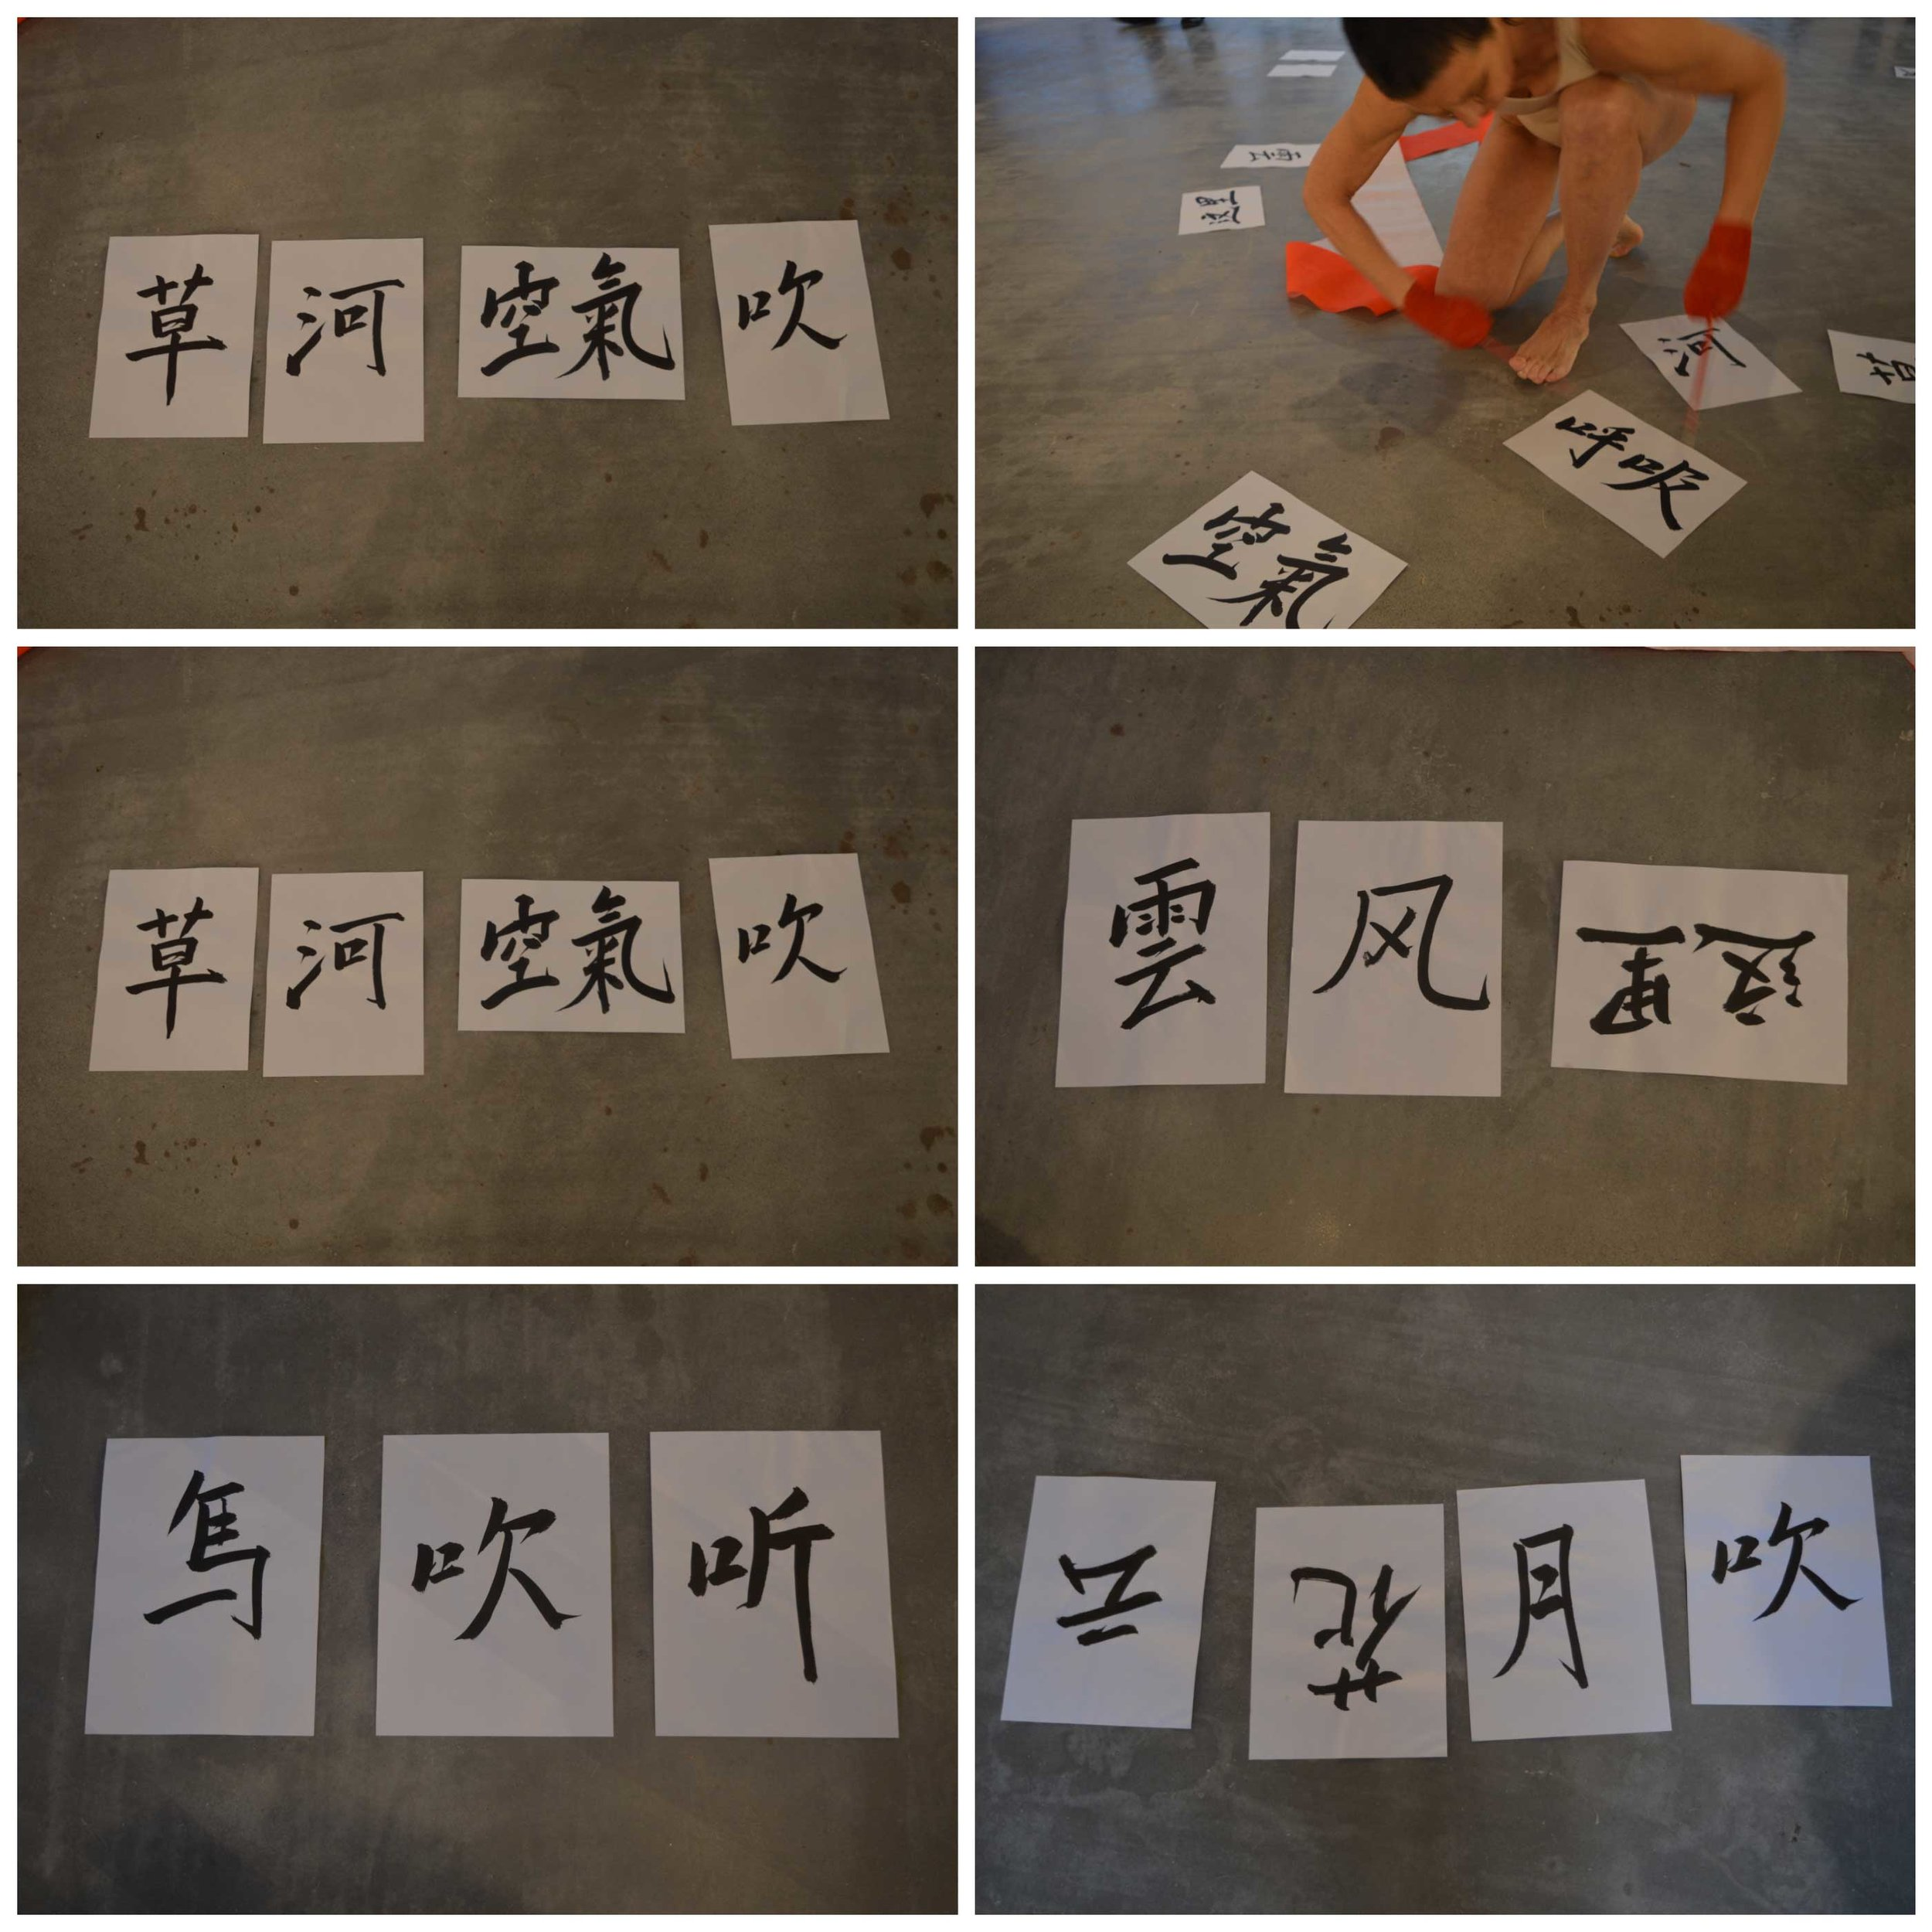 (excerpt)    inept desires 90 days before China (Part II) ,Live Performance,  Changjiang Museum of Contemporary Art - Parabiosis/Experiment-Transcendence - Chongqing, China   photographed by JIAYI HU